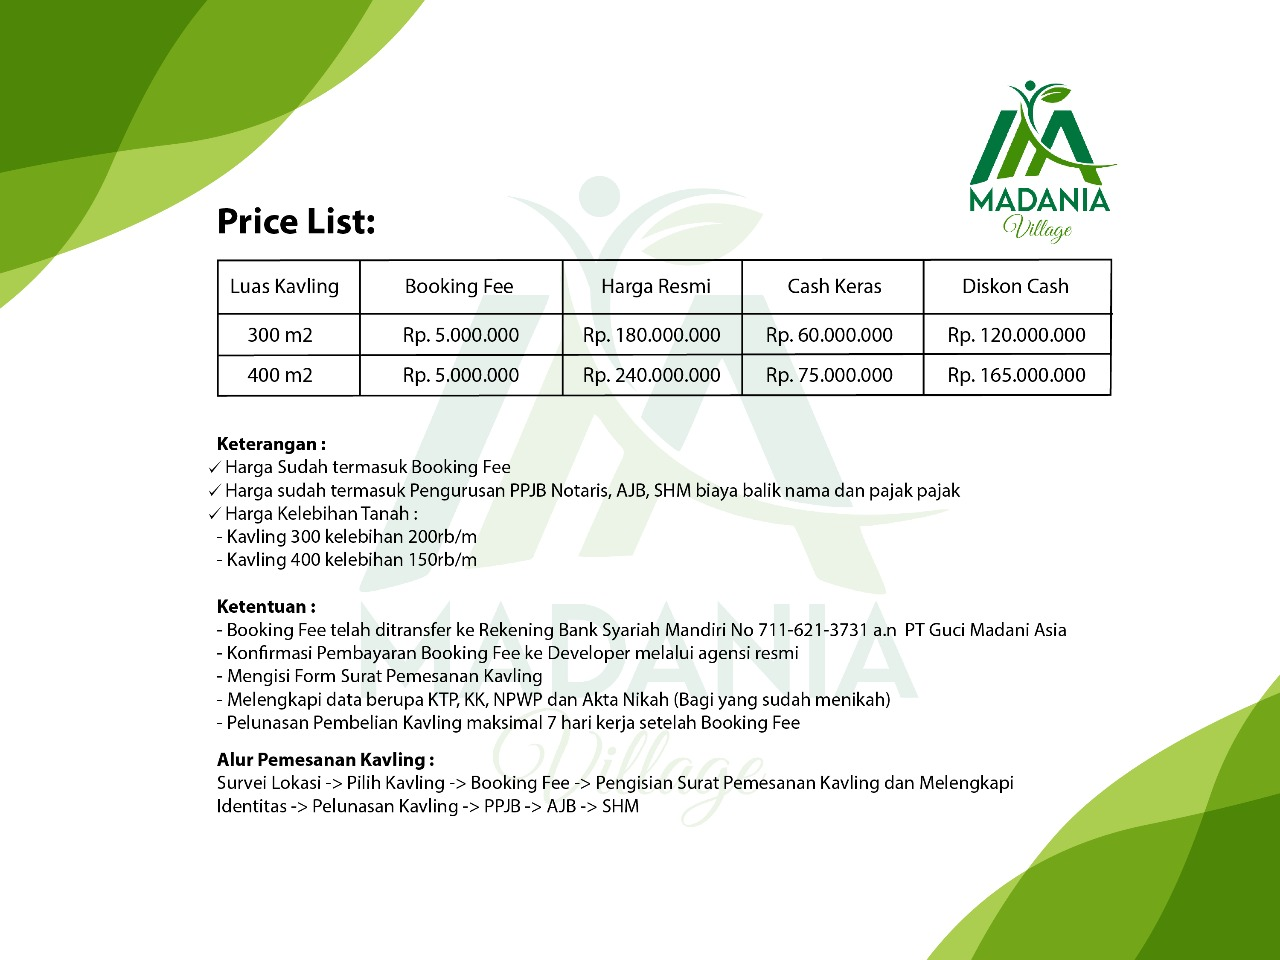 pricelist madania village